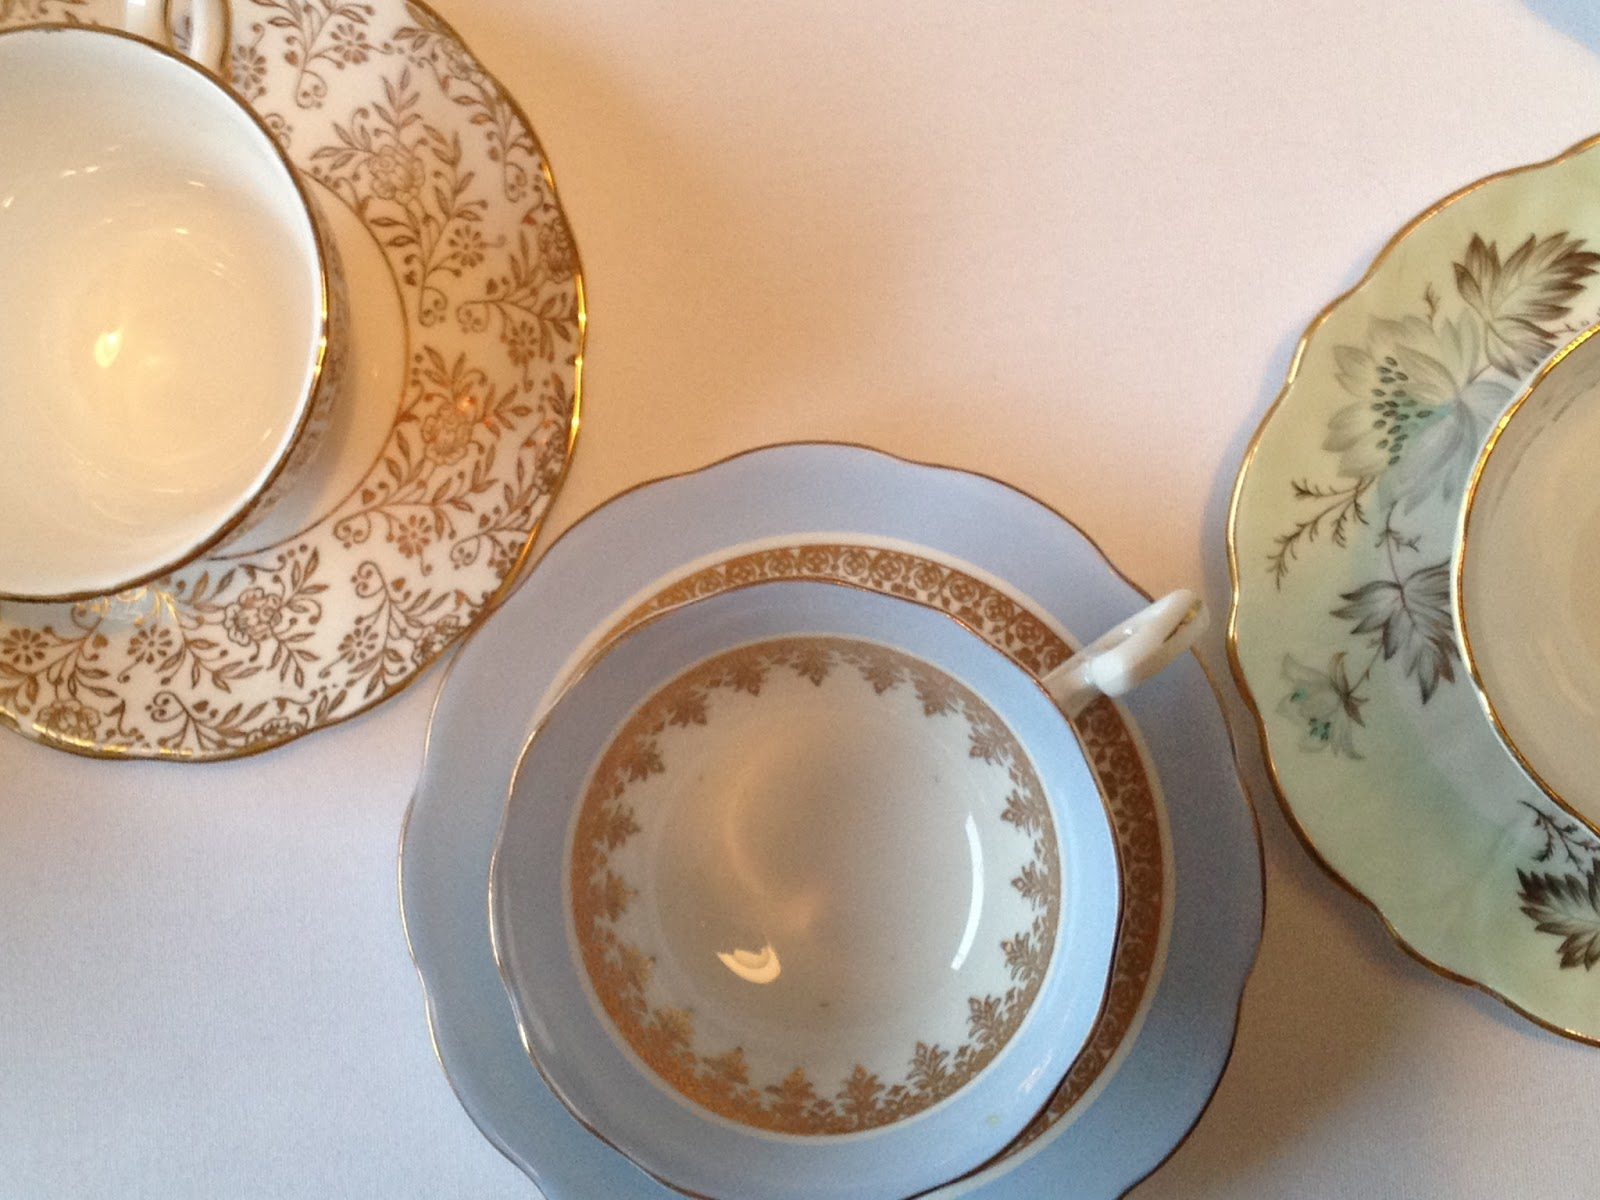 START YOUR OWN TEACUP COLLECTION